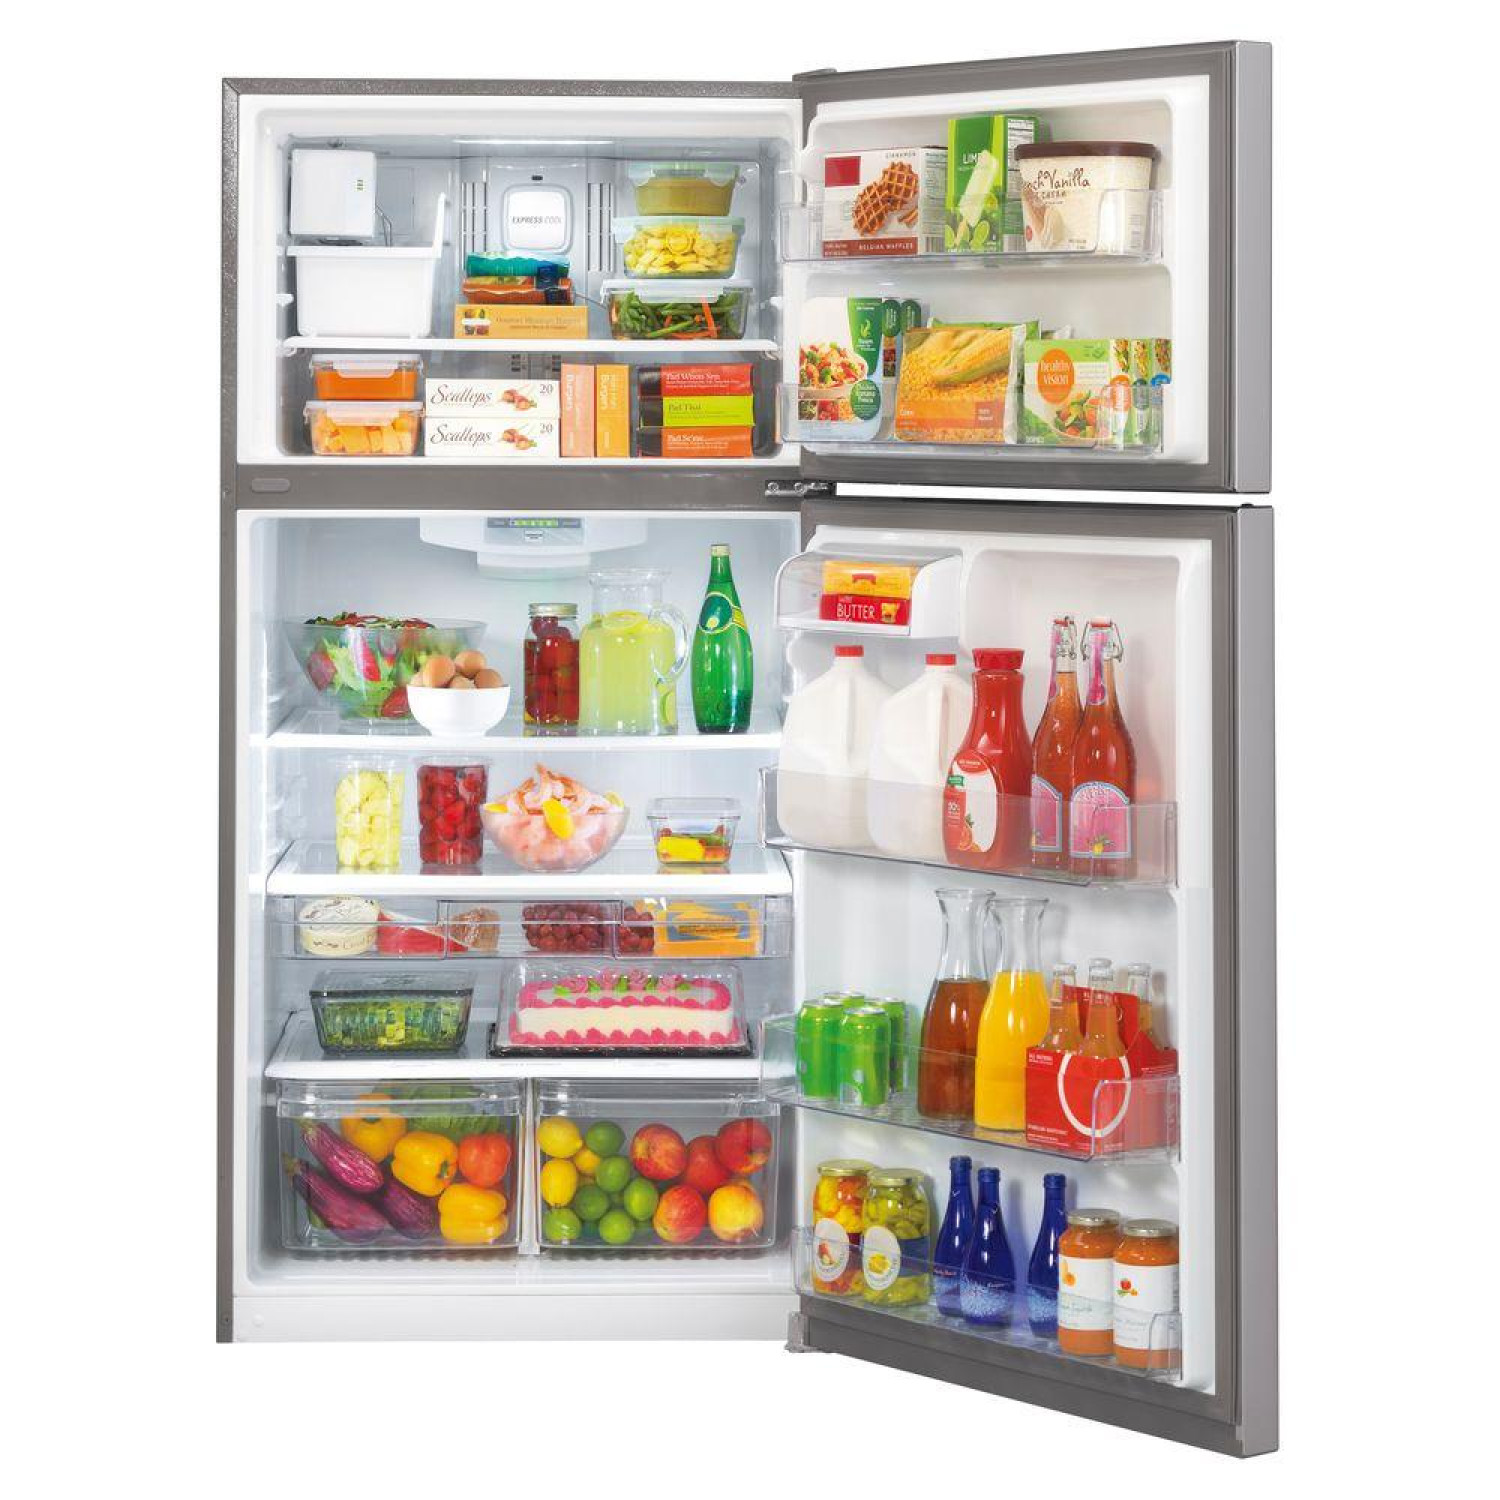 Best Refrigerator In India  Infographic